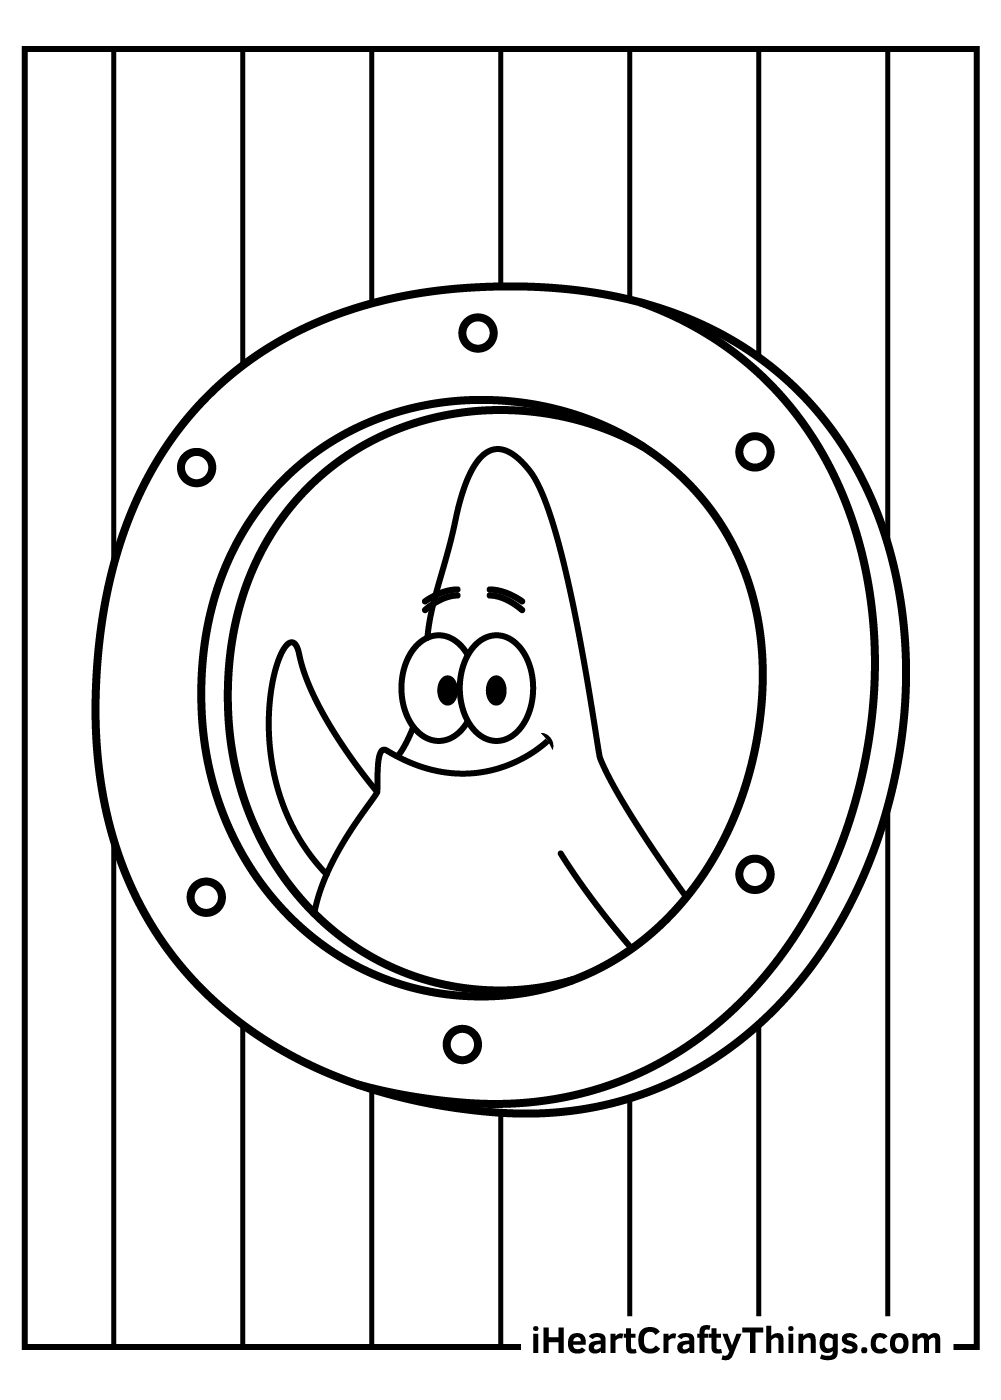 patrick spongebob coloring pages	free download